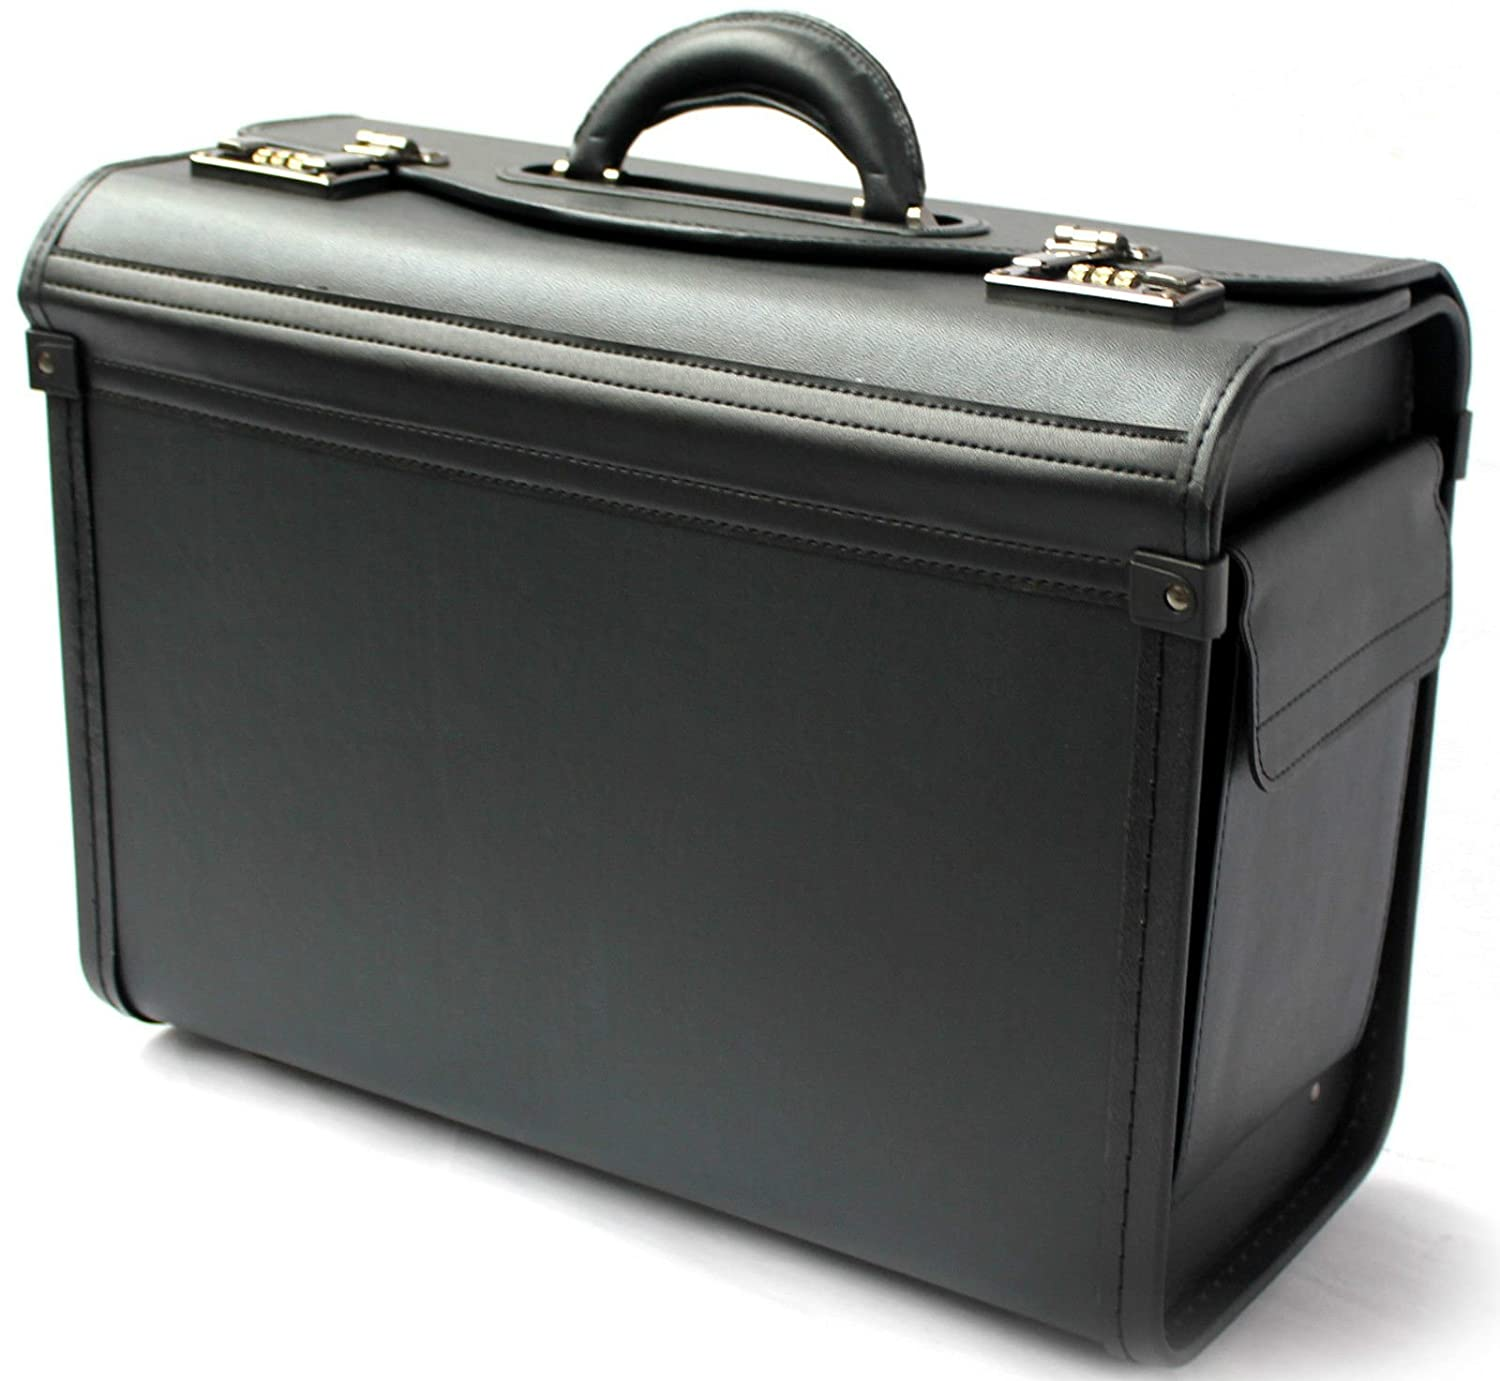 Porte-documents style business - style business/taille cabine